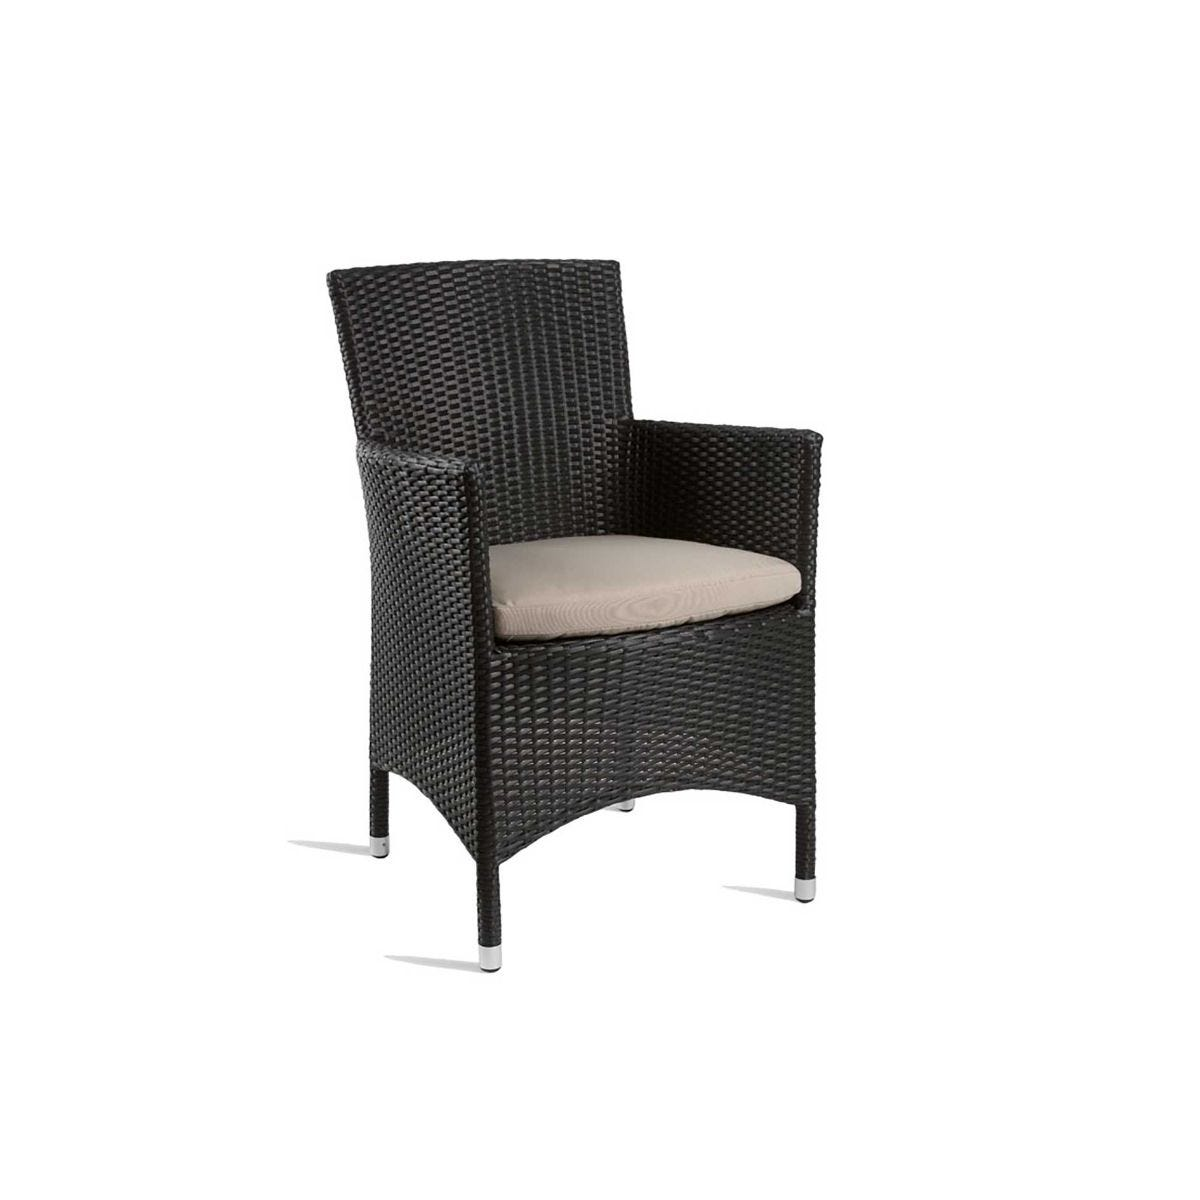 Stag Comfort Outdoor Arm Chair, Black